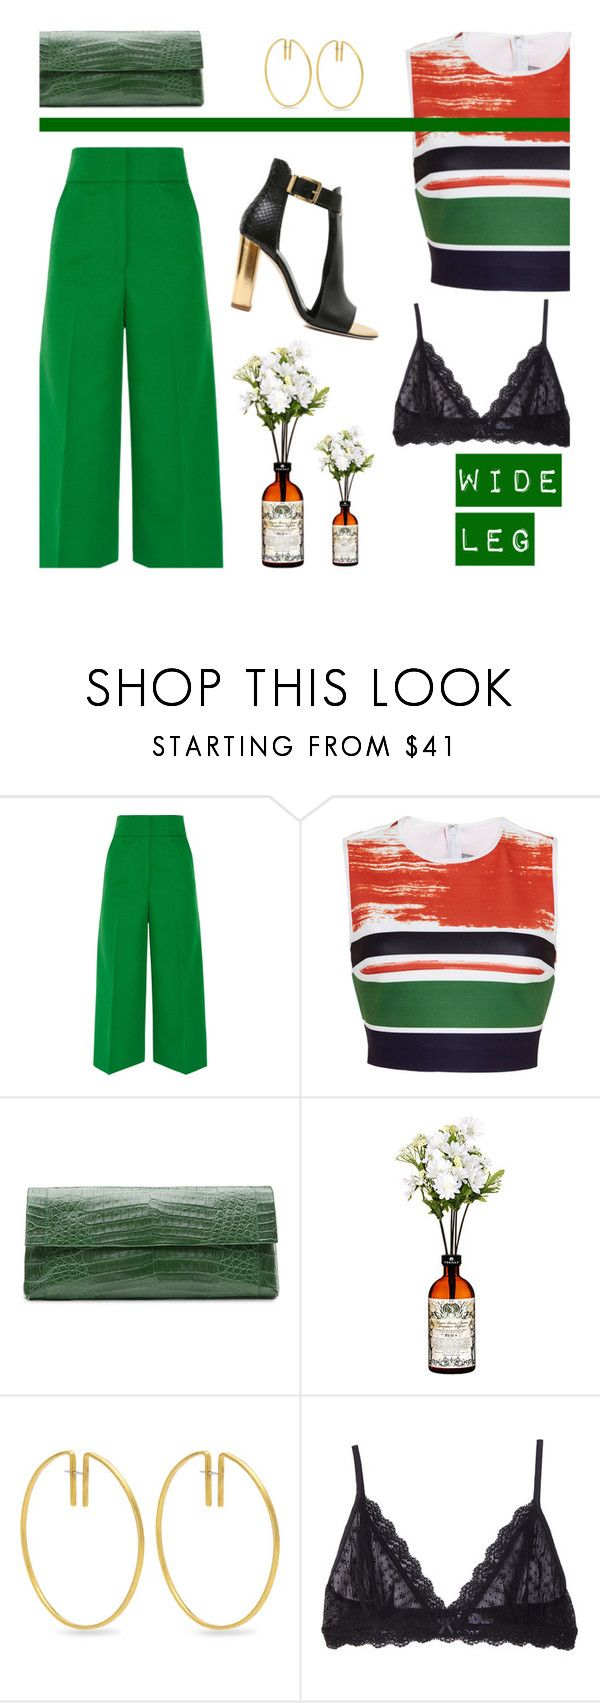 """""""WIDELEG PANTS"""" by alongcametwiggy ❤ liked on Polyvore featuring Marni, Clover Canyon, Nancy Gonzalez, Fay Andrada, Eberjey, denimtrend and widelegjeans"""